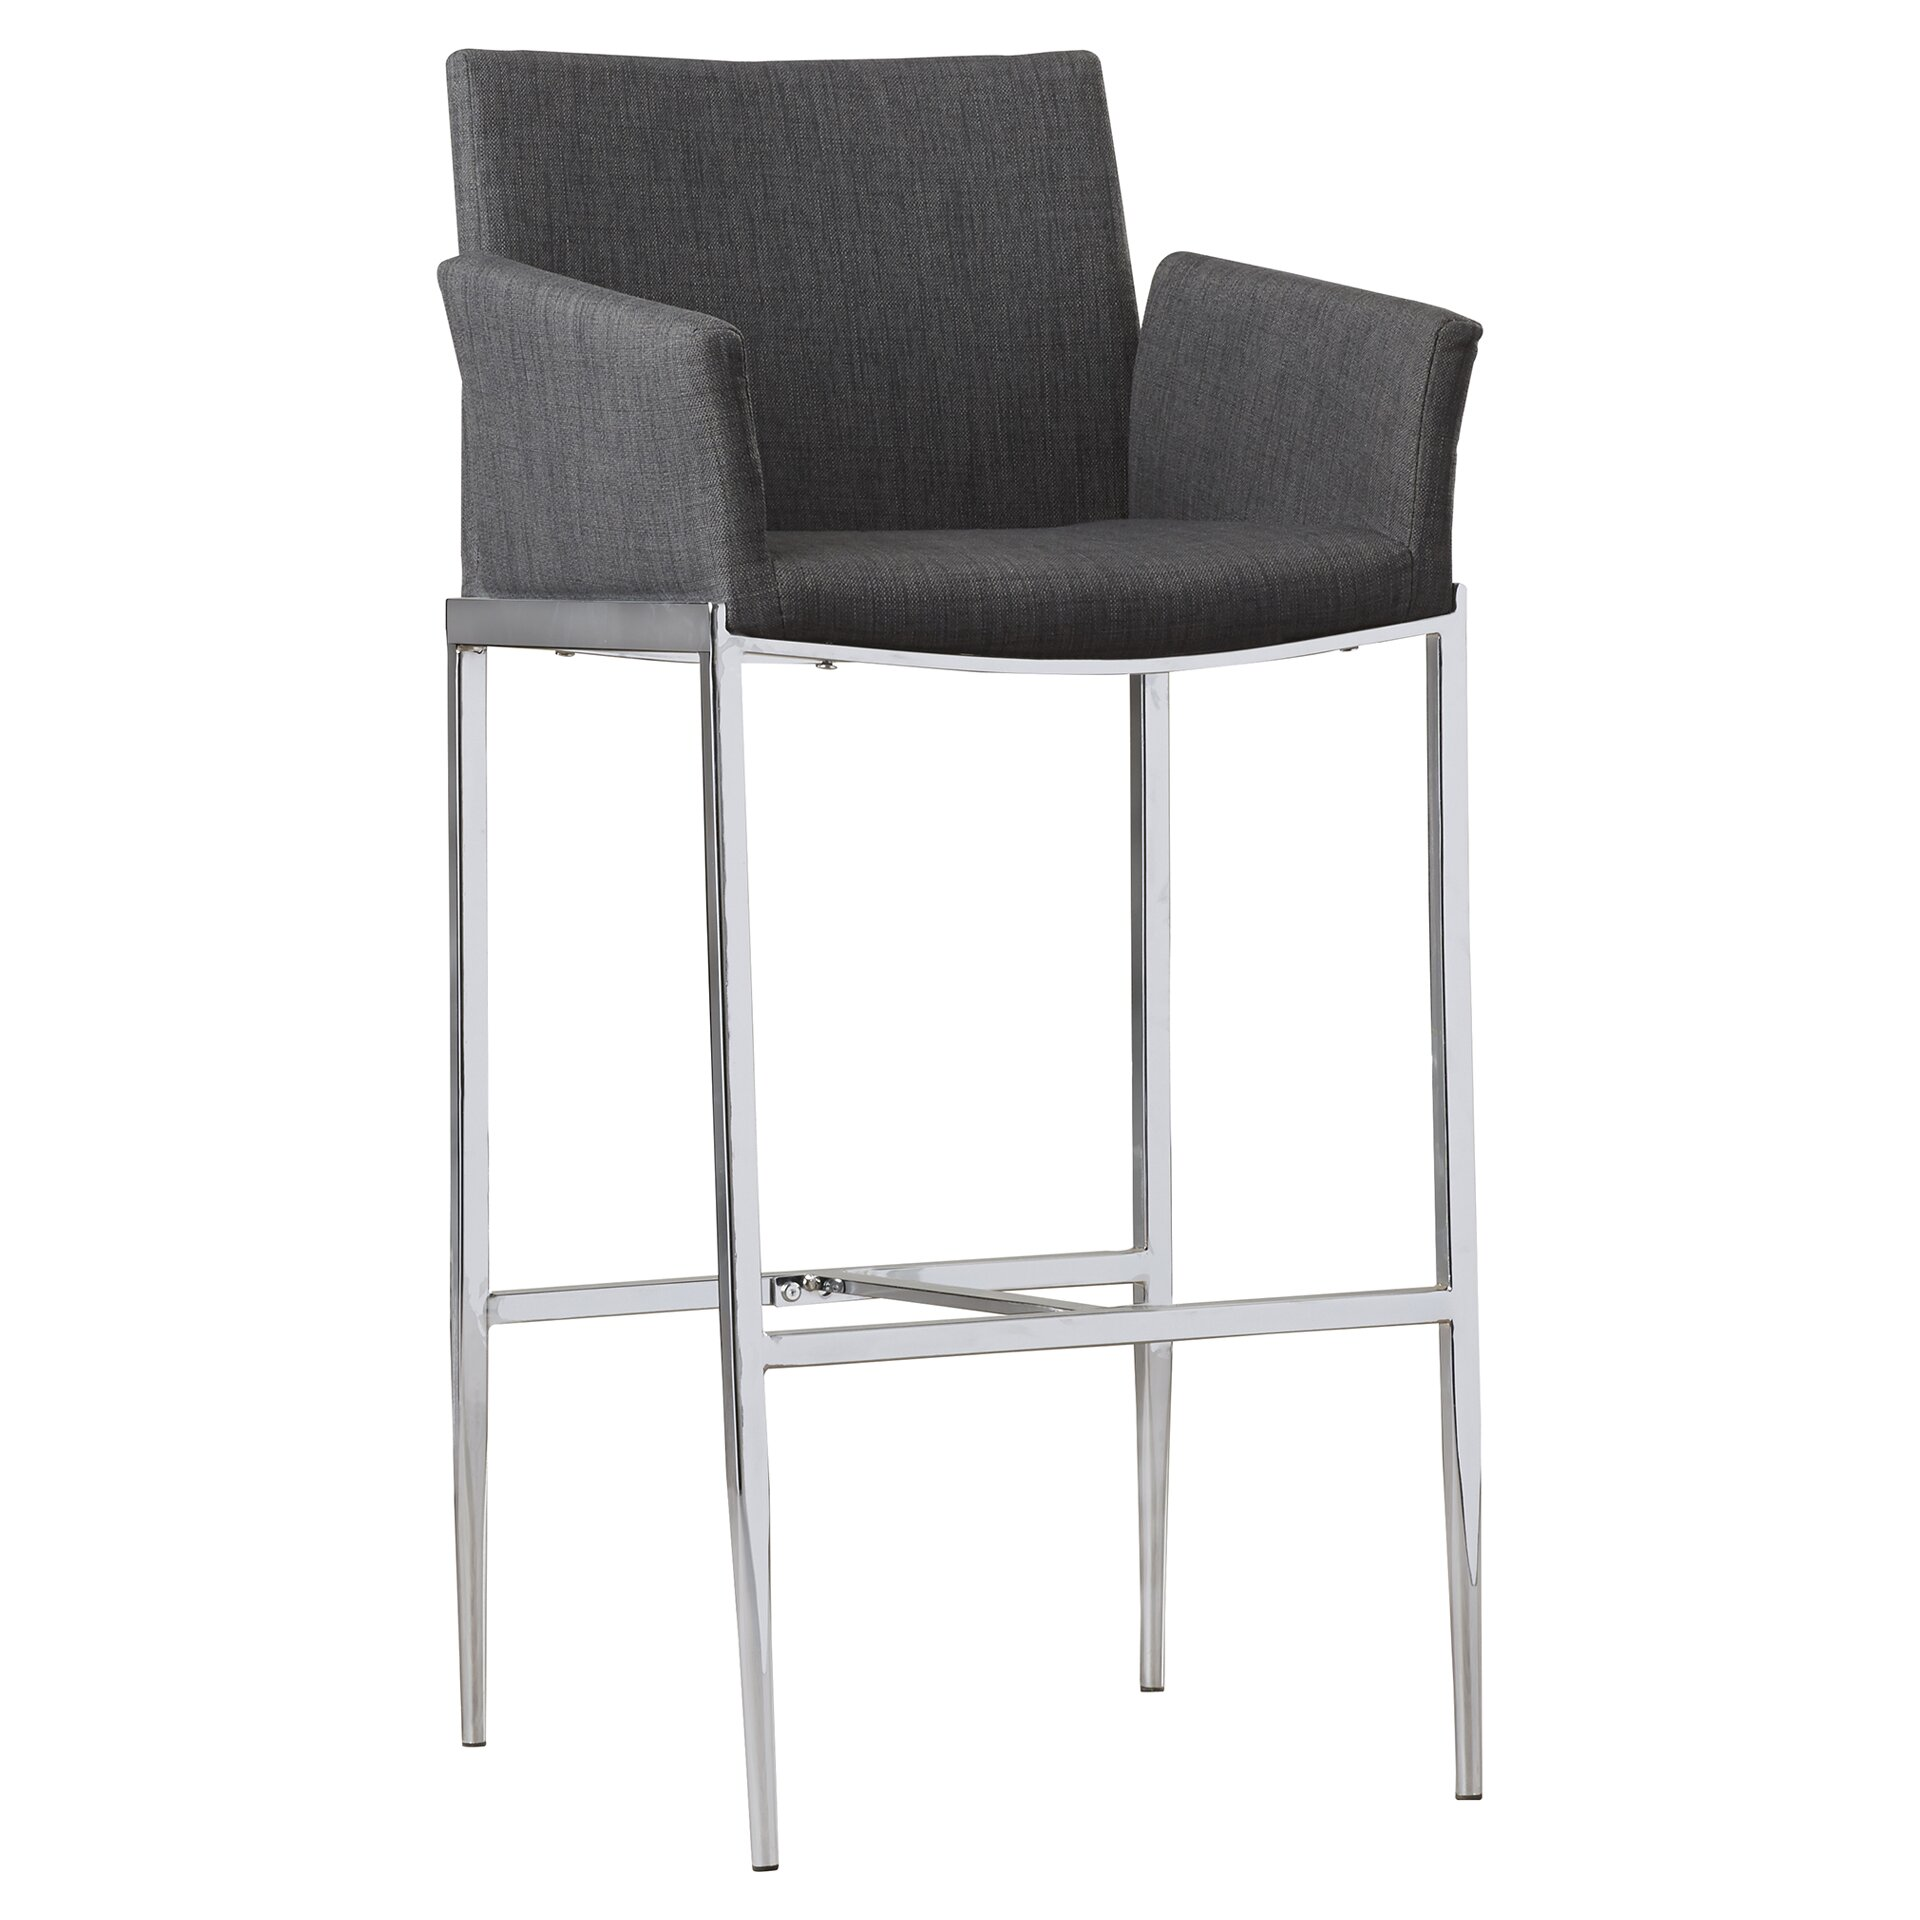 Furniture Row Bar Stools Ferrarauno Info